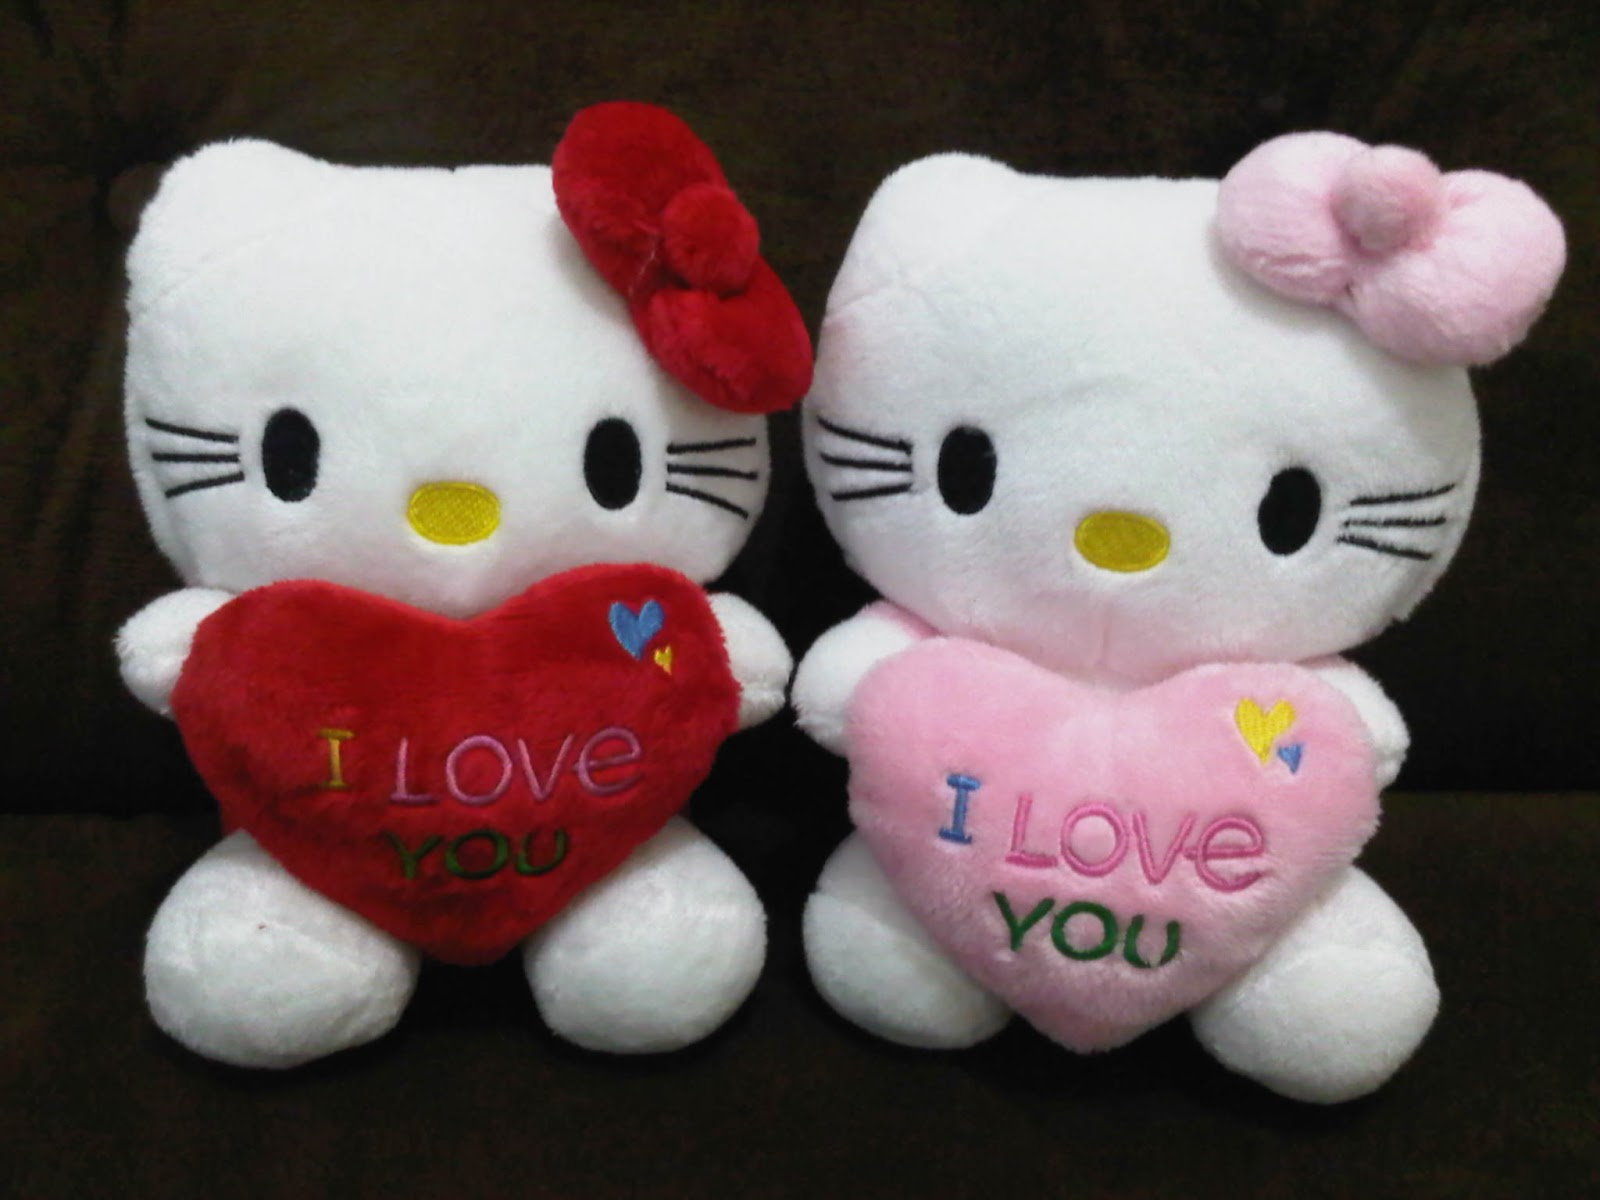 KUMPULAN GAMBAR BONEKA HELLO KITTY LUCU HELLO KITTY DOLL Foto